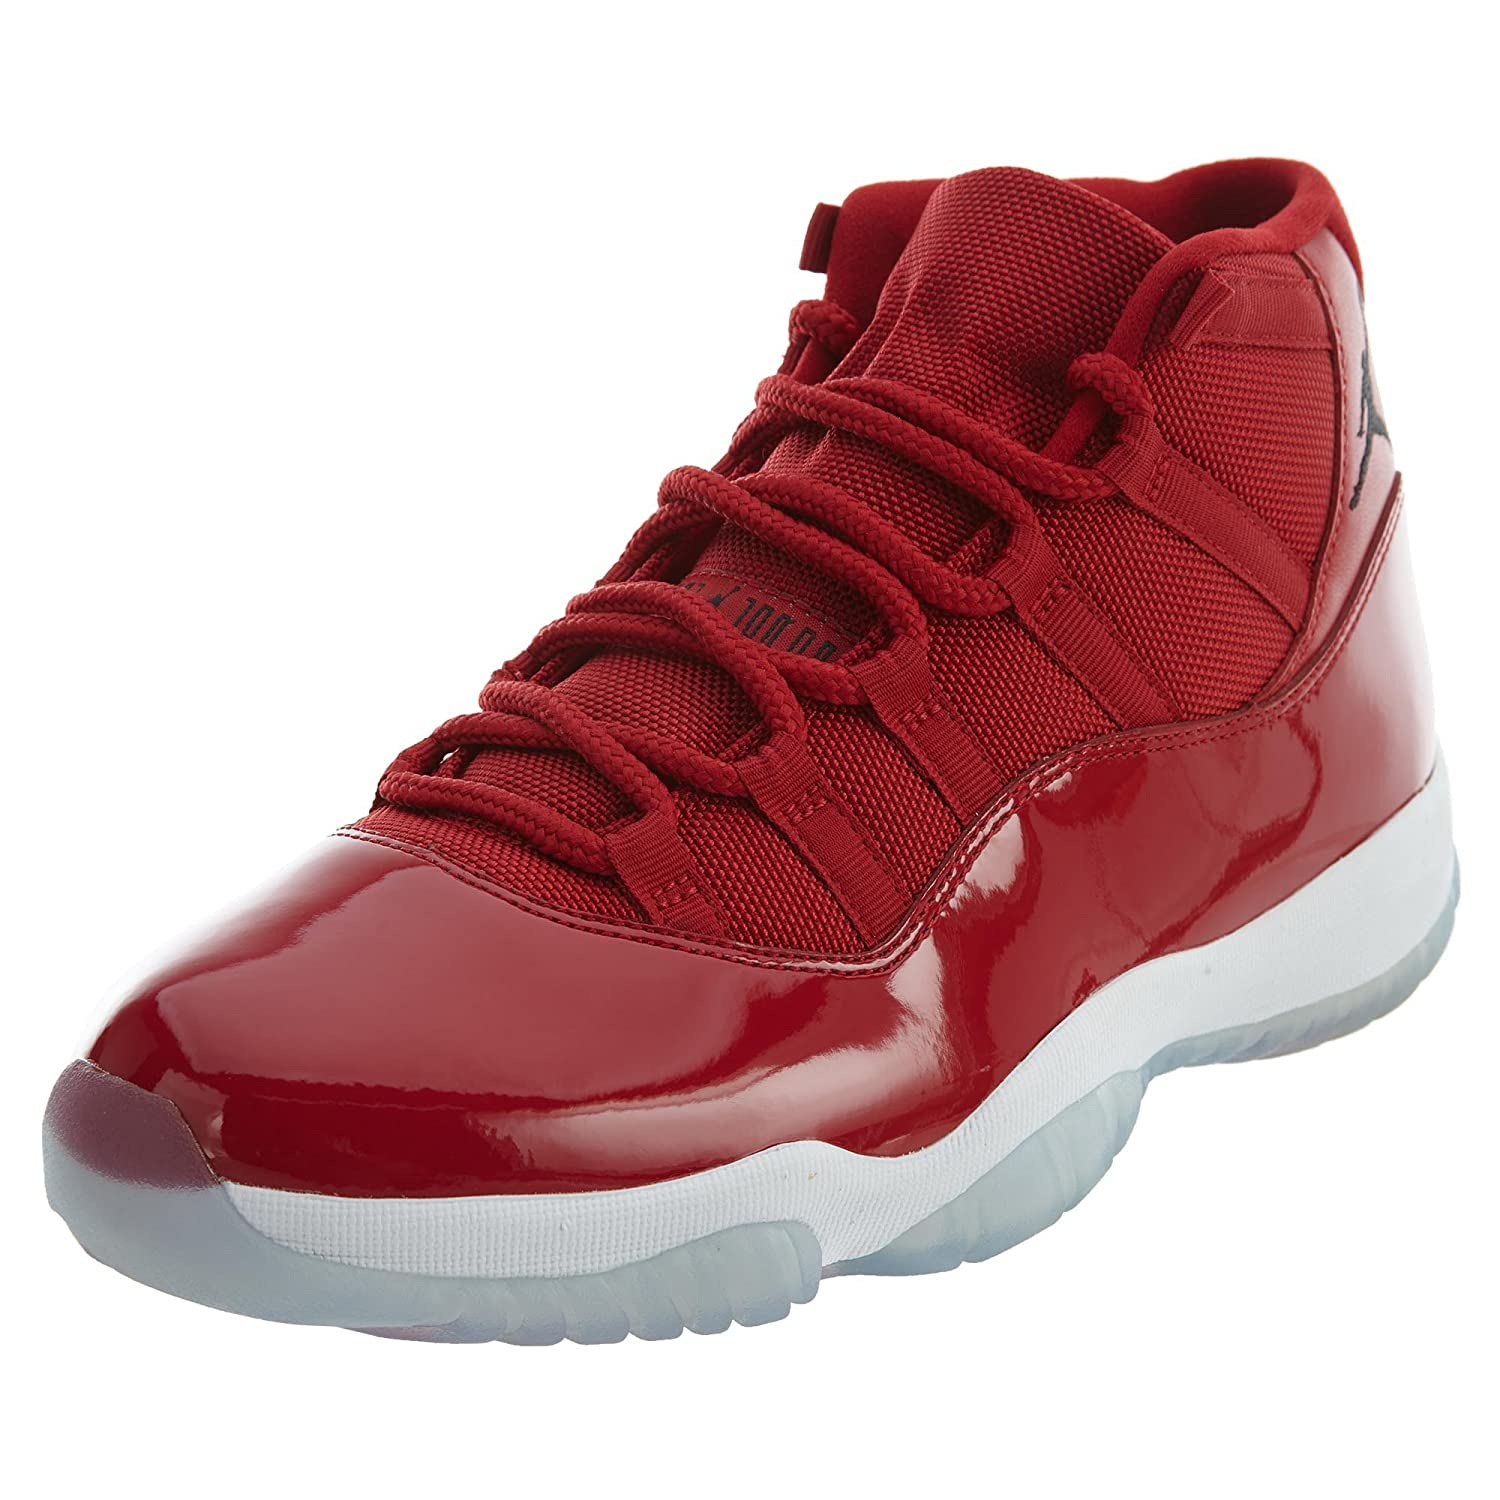 super popular eb0a1 3df68 Amazon.com | Air Jordan 11 Retro